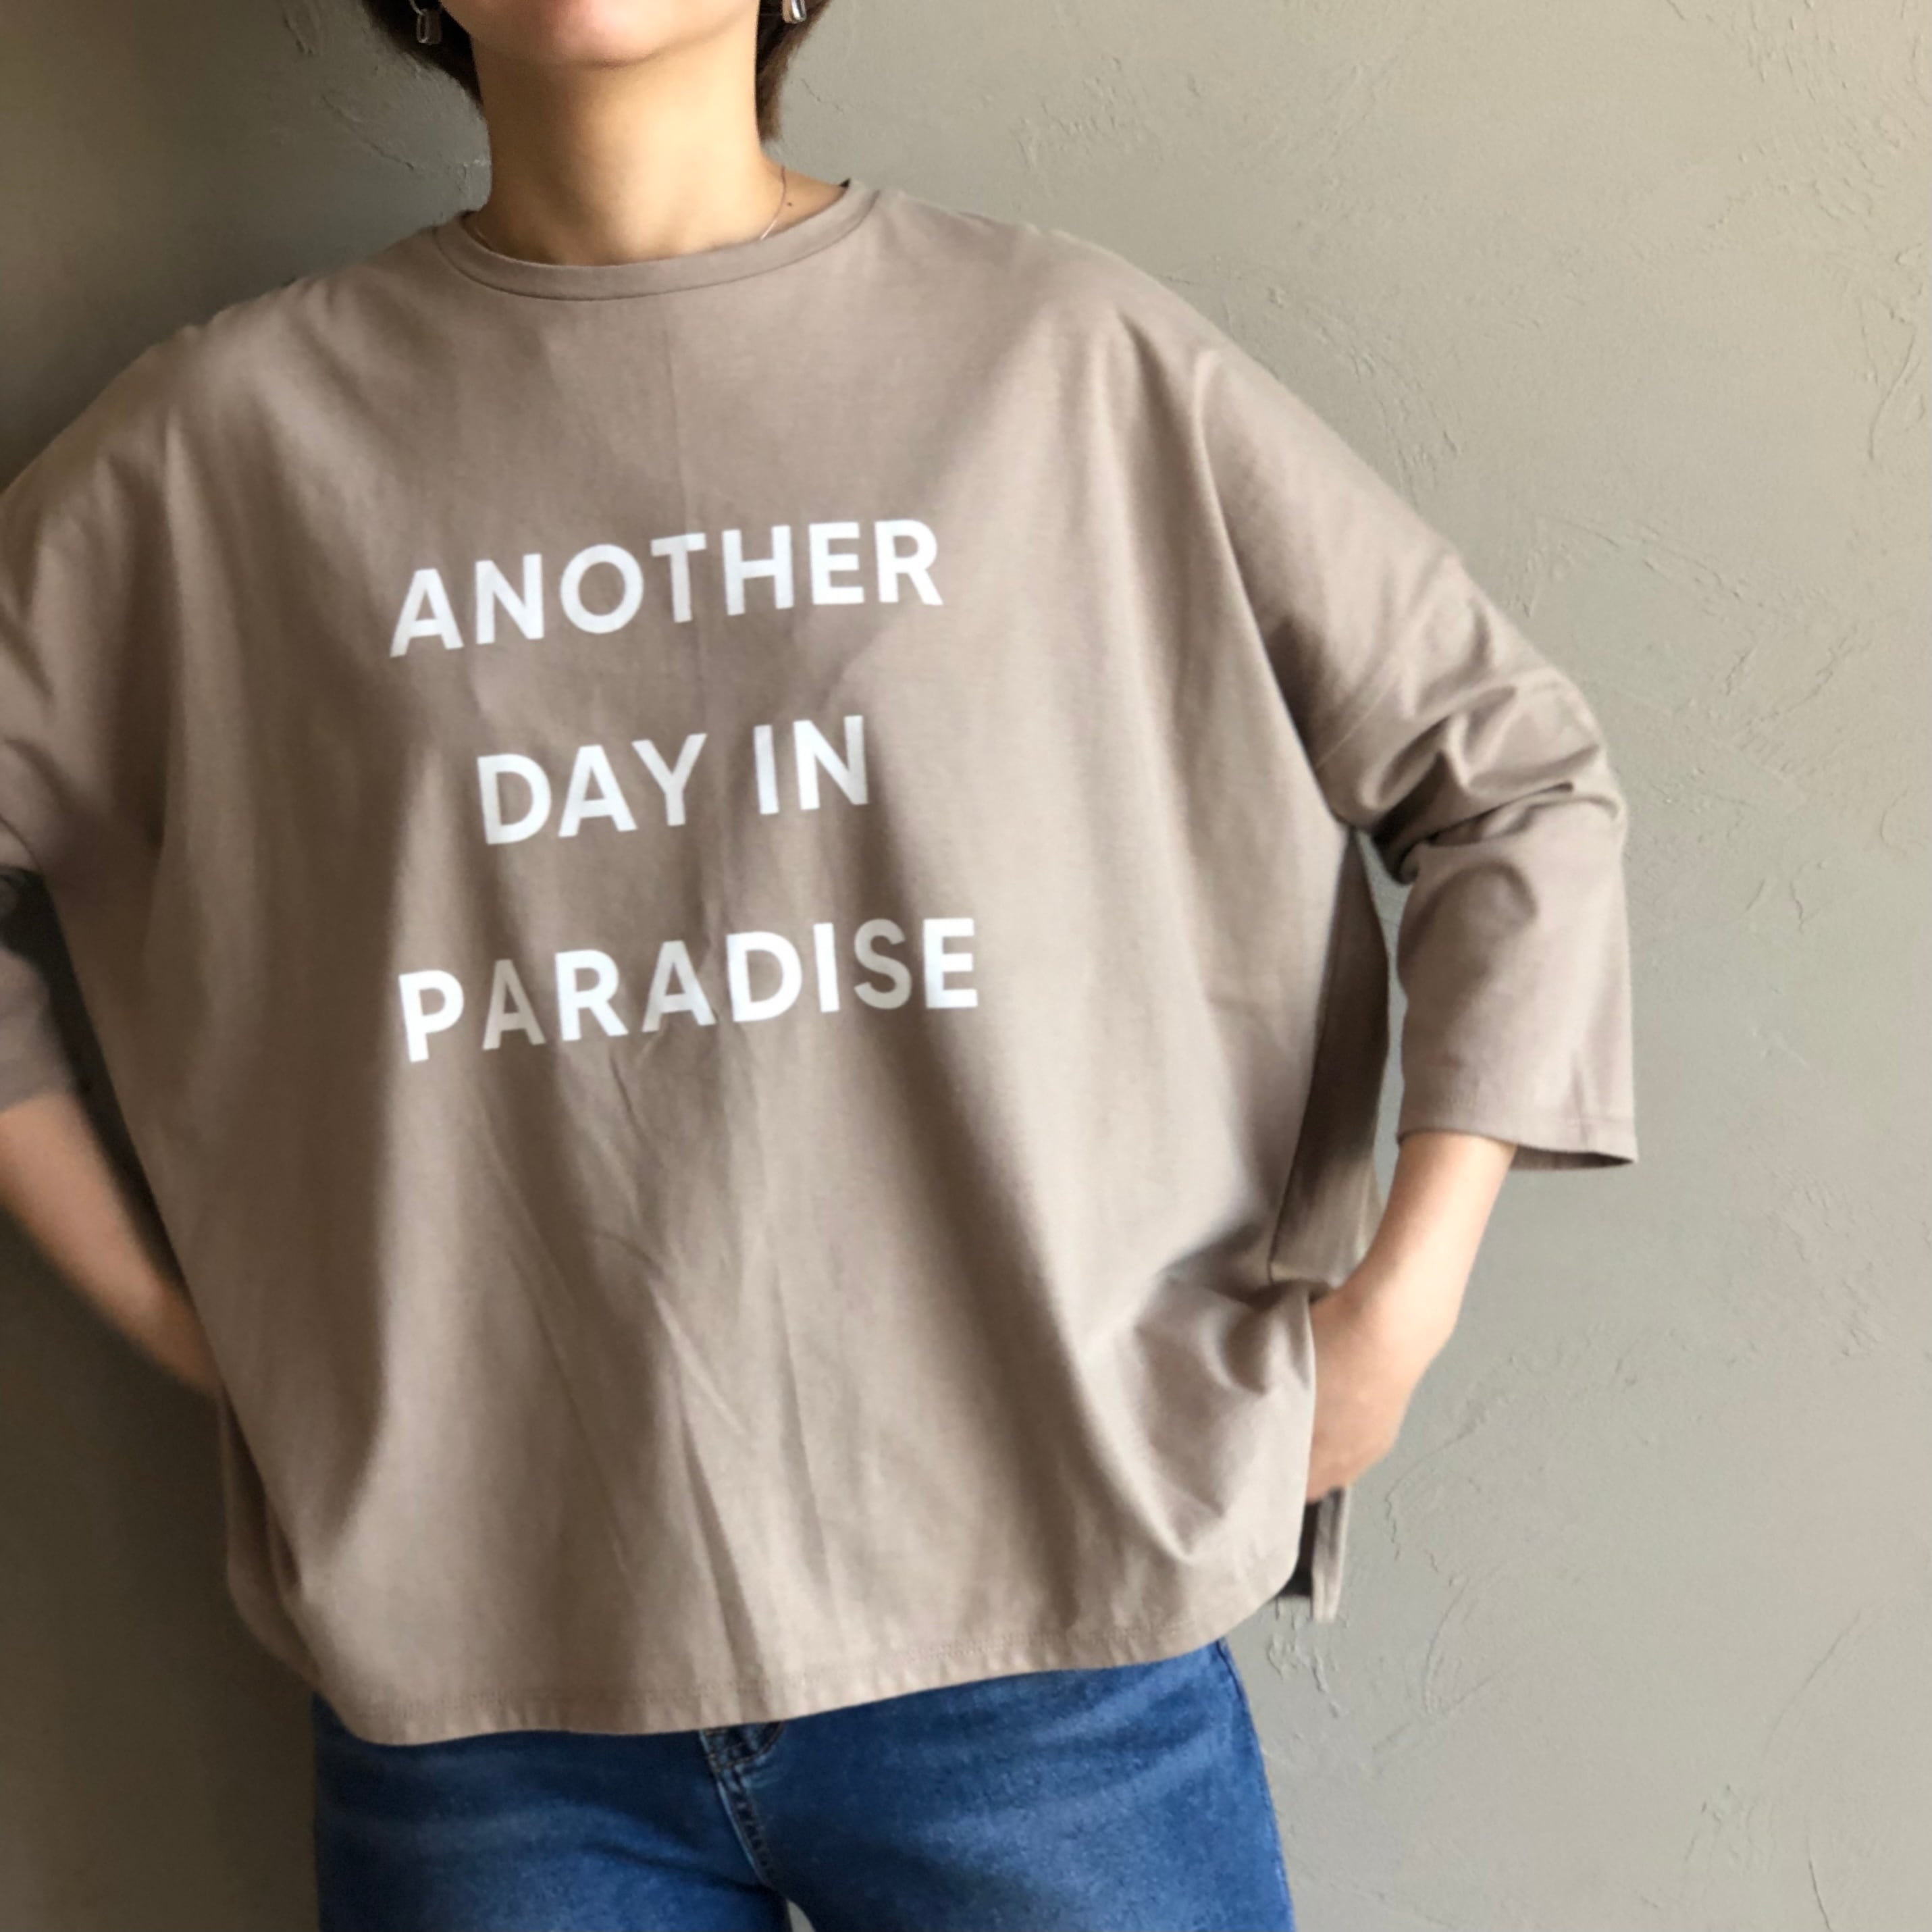 【 siro de labonte 】- R143212 - 30/- highgauge cotton プリントプルオーバー(ANOTHER DAY IN PARADISE)